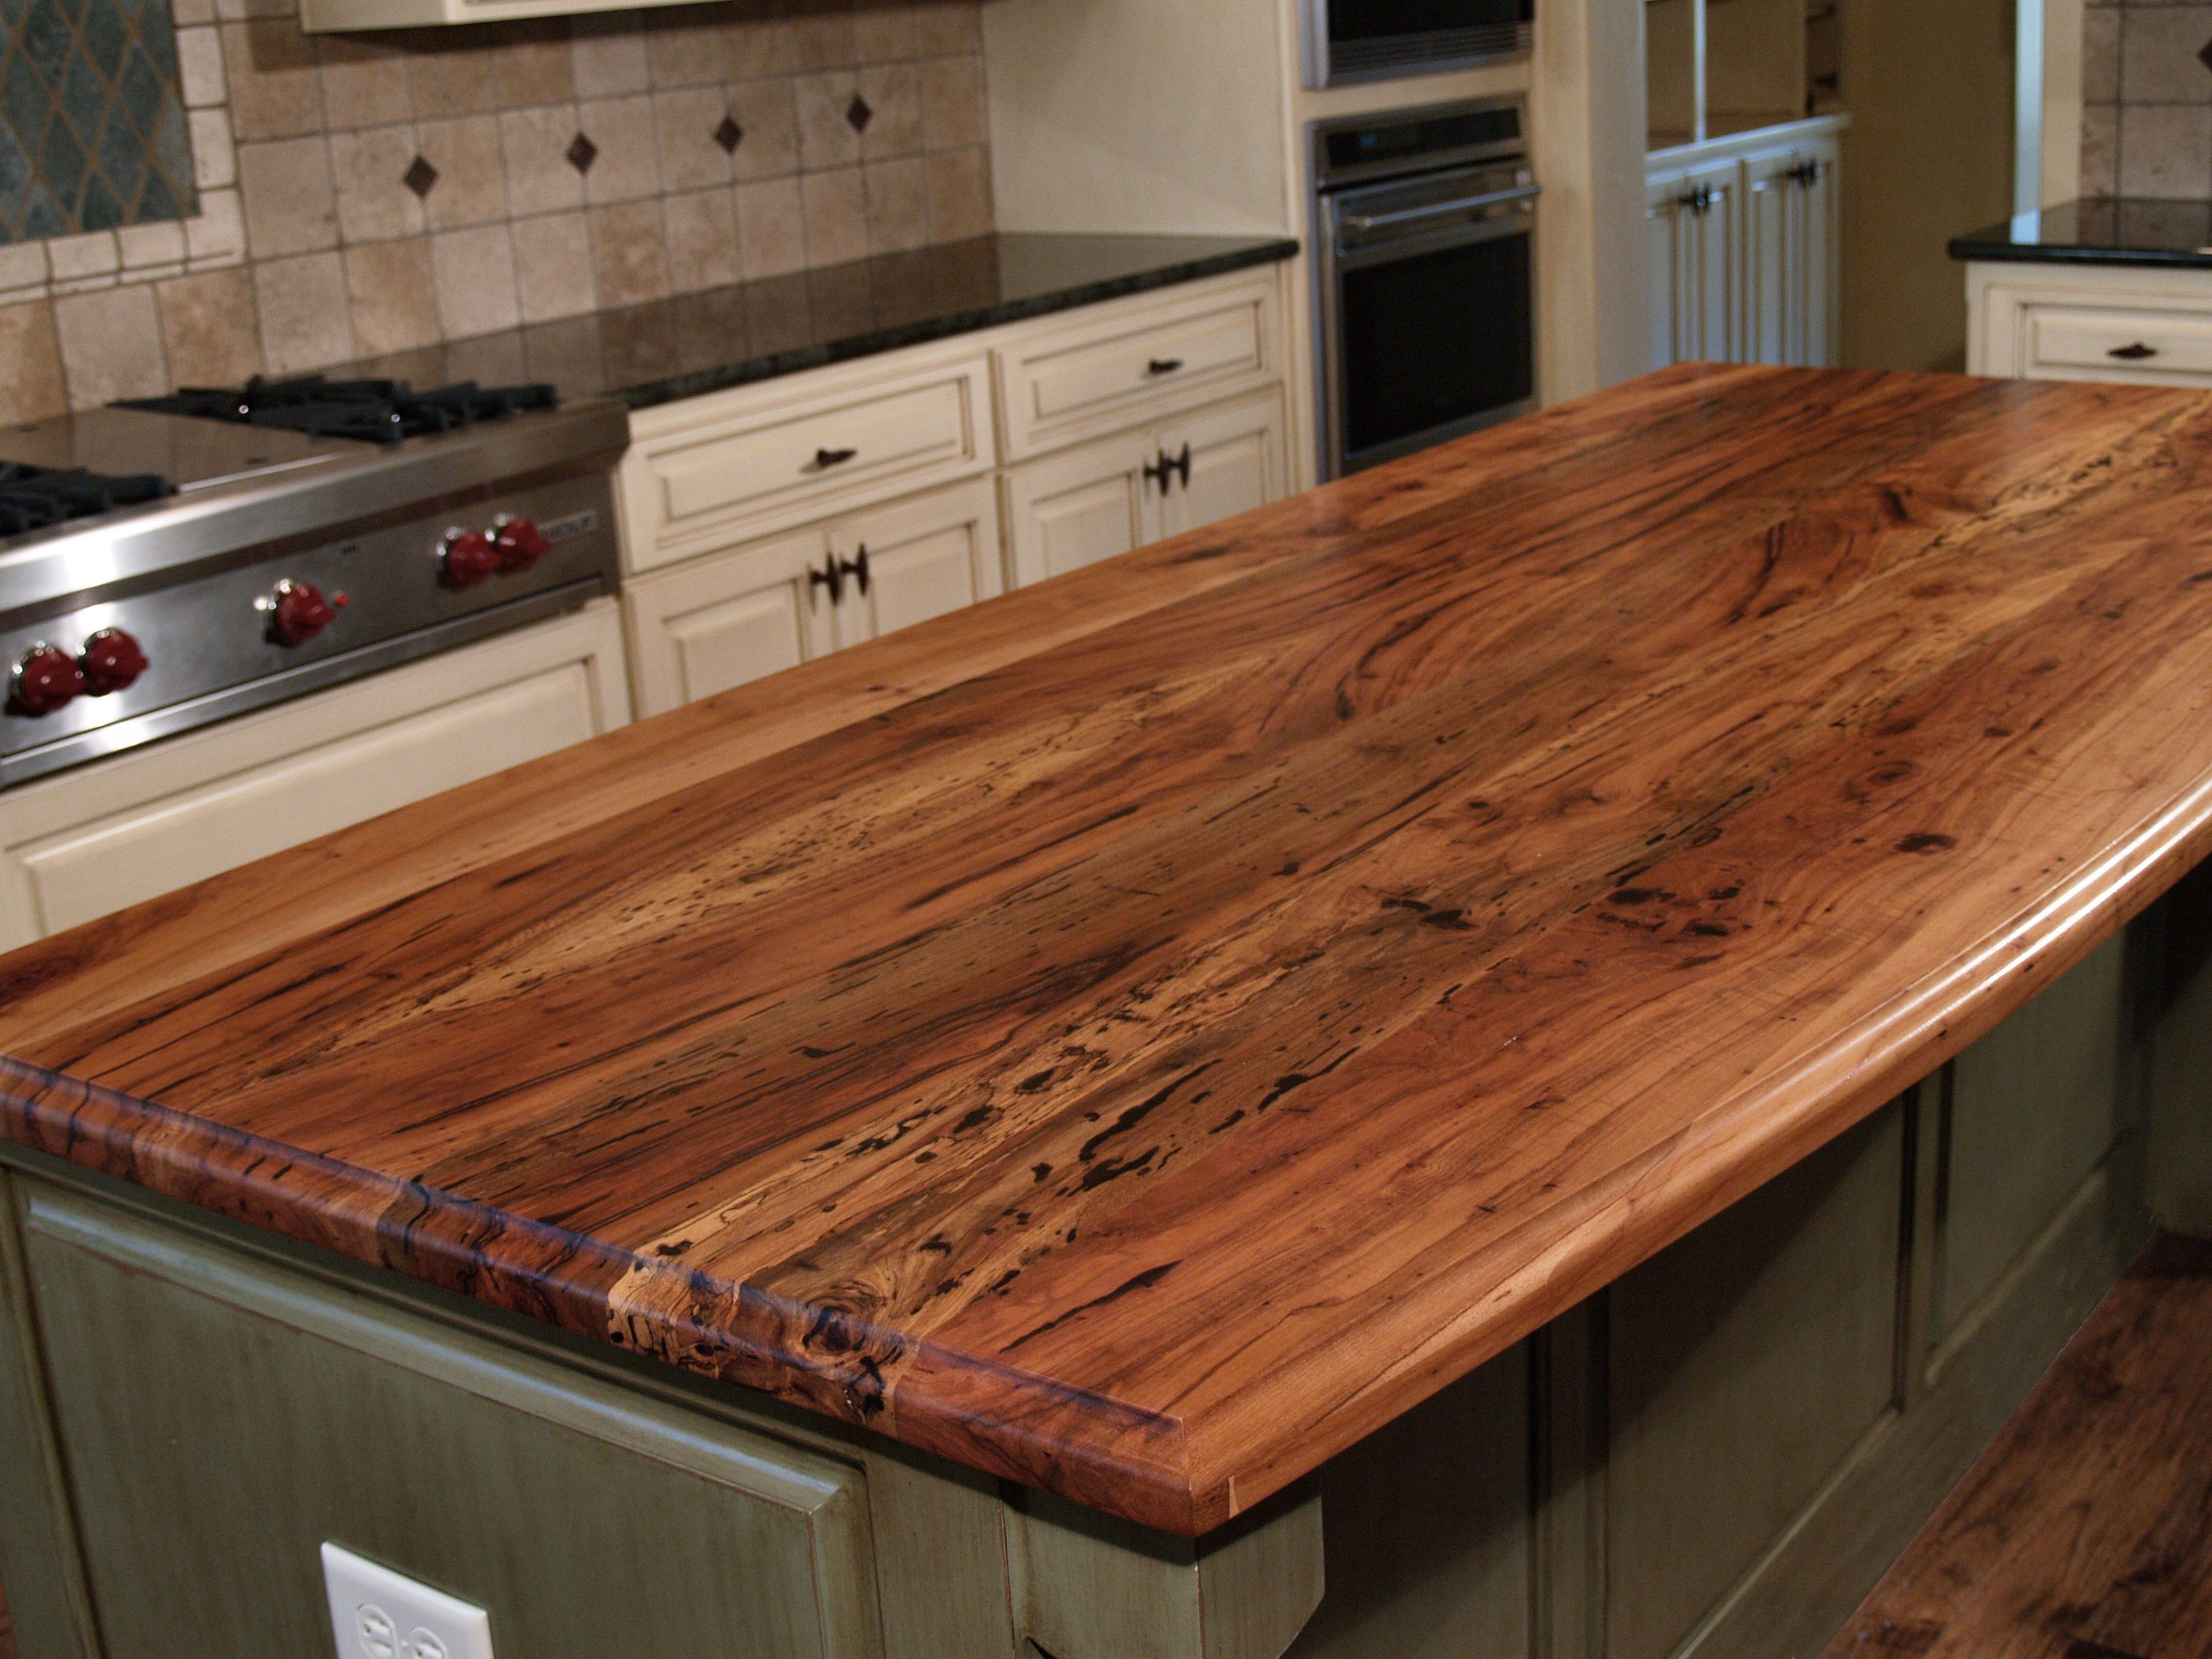 How To Finish A Wooden Countertop | Home design ideas